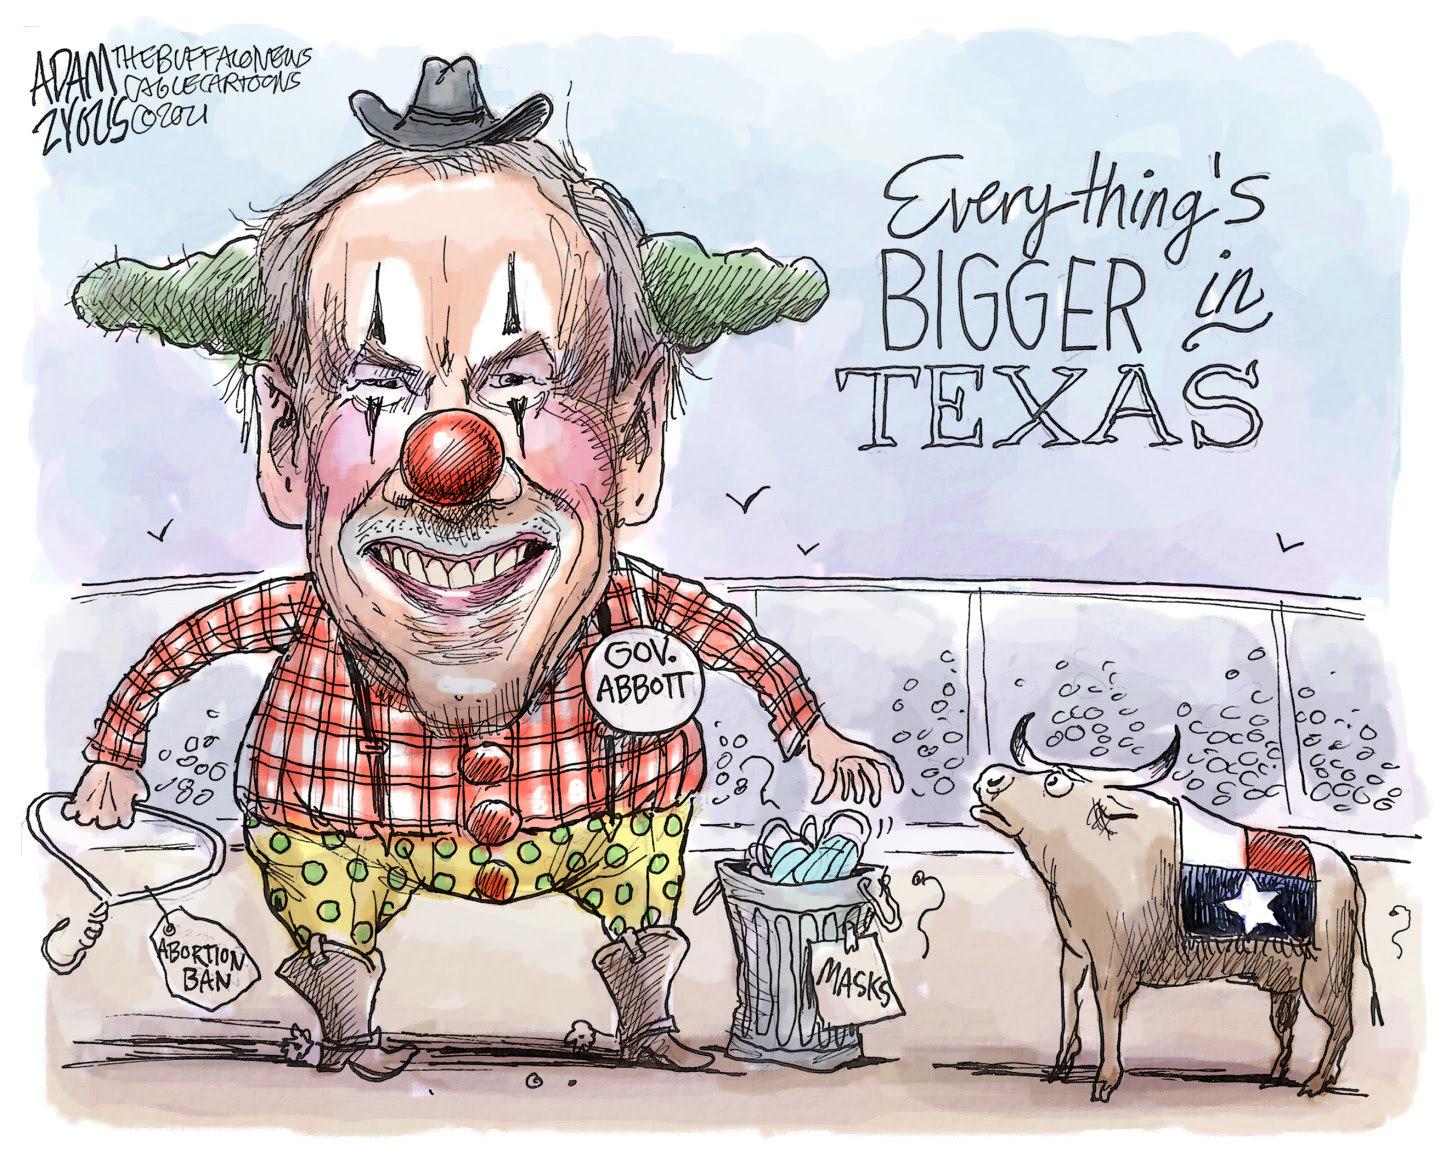 Greg Abbott bans abortions, offers bounties to vigilantes while ignoring COVID safety measures.